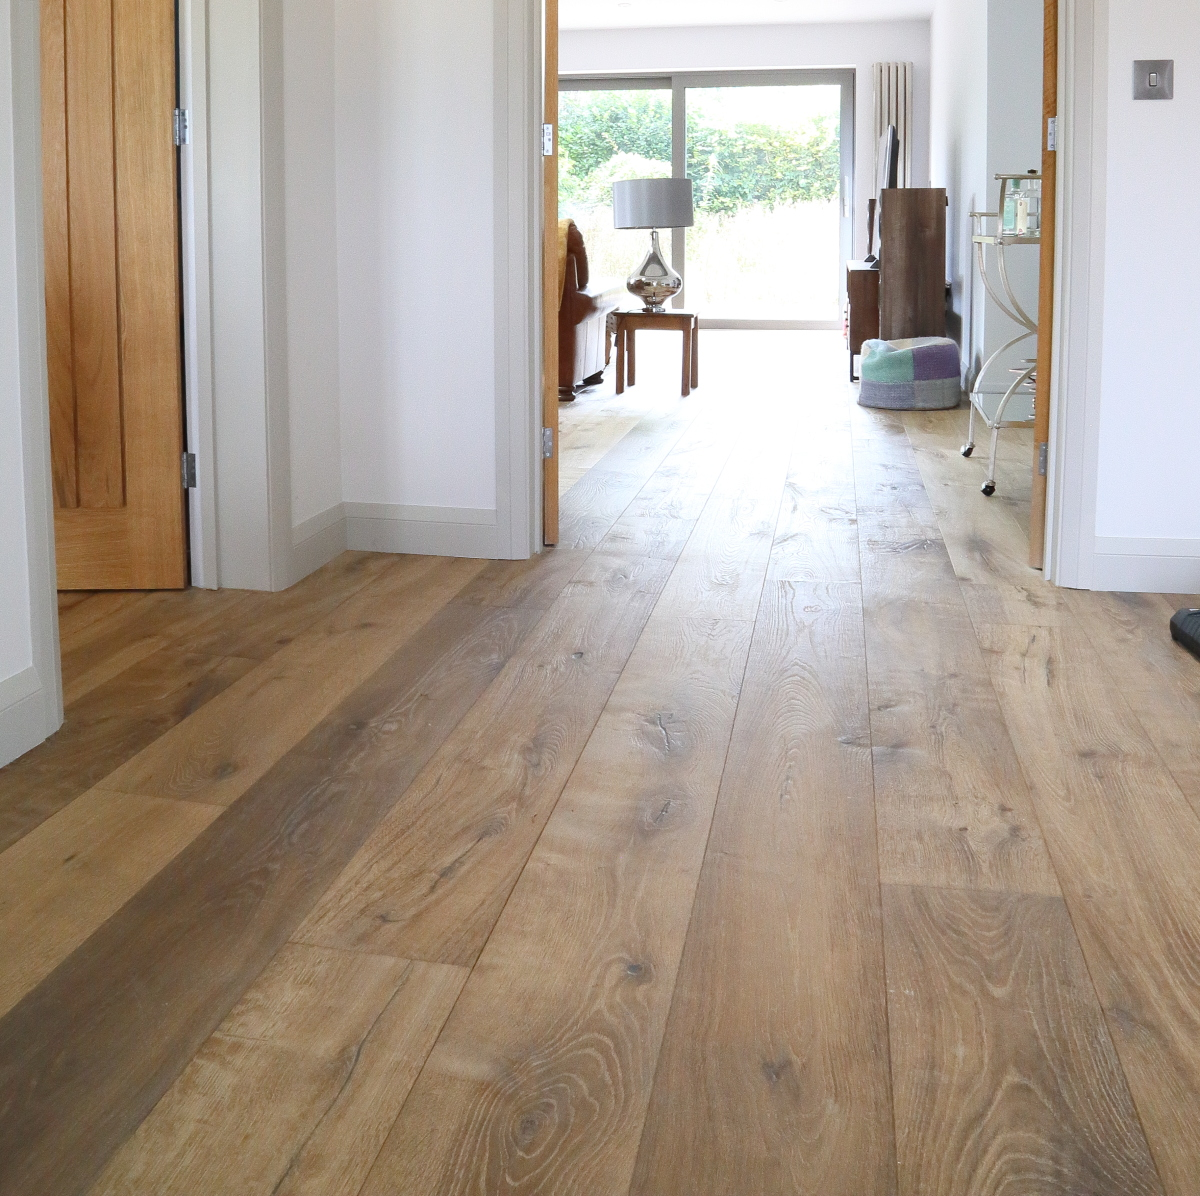 Weathered Oak Flooring - aged and distressed wide oak floorboards available from hicraftflooring.co uk, product code HC1334